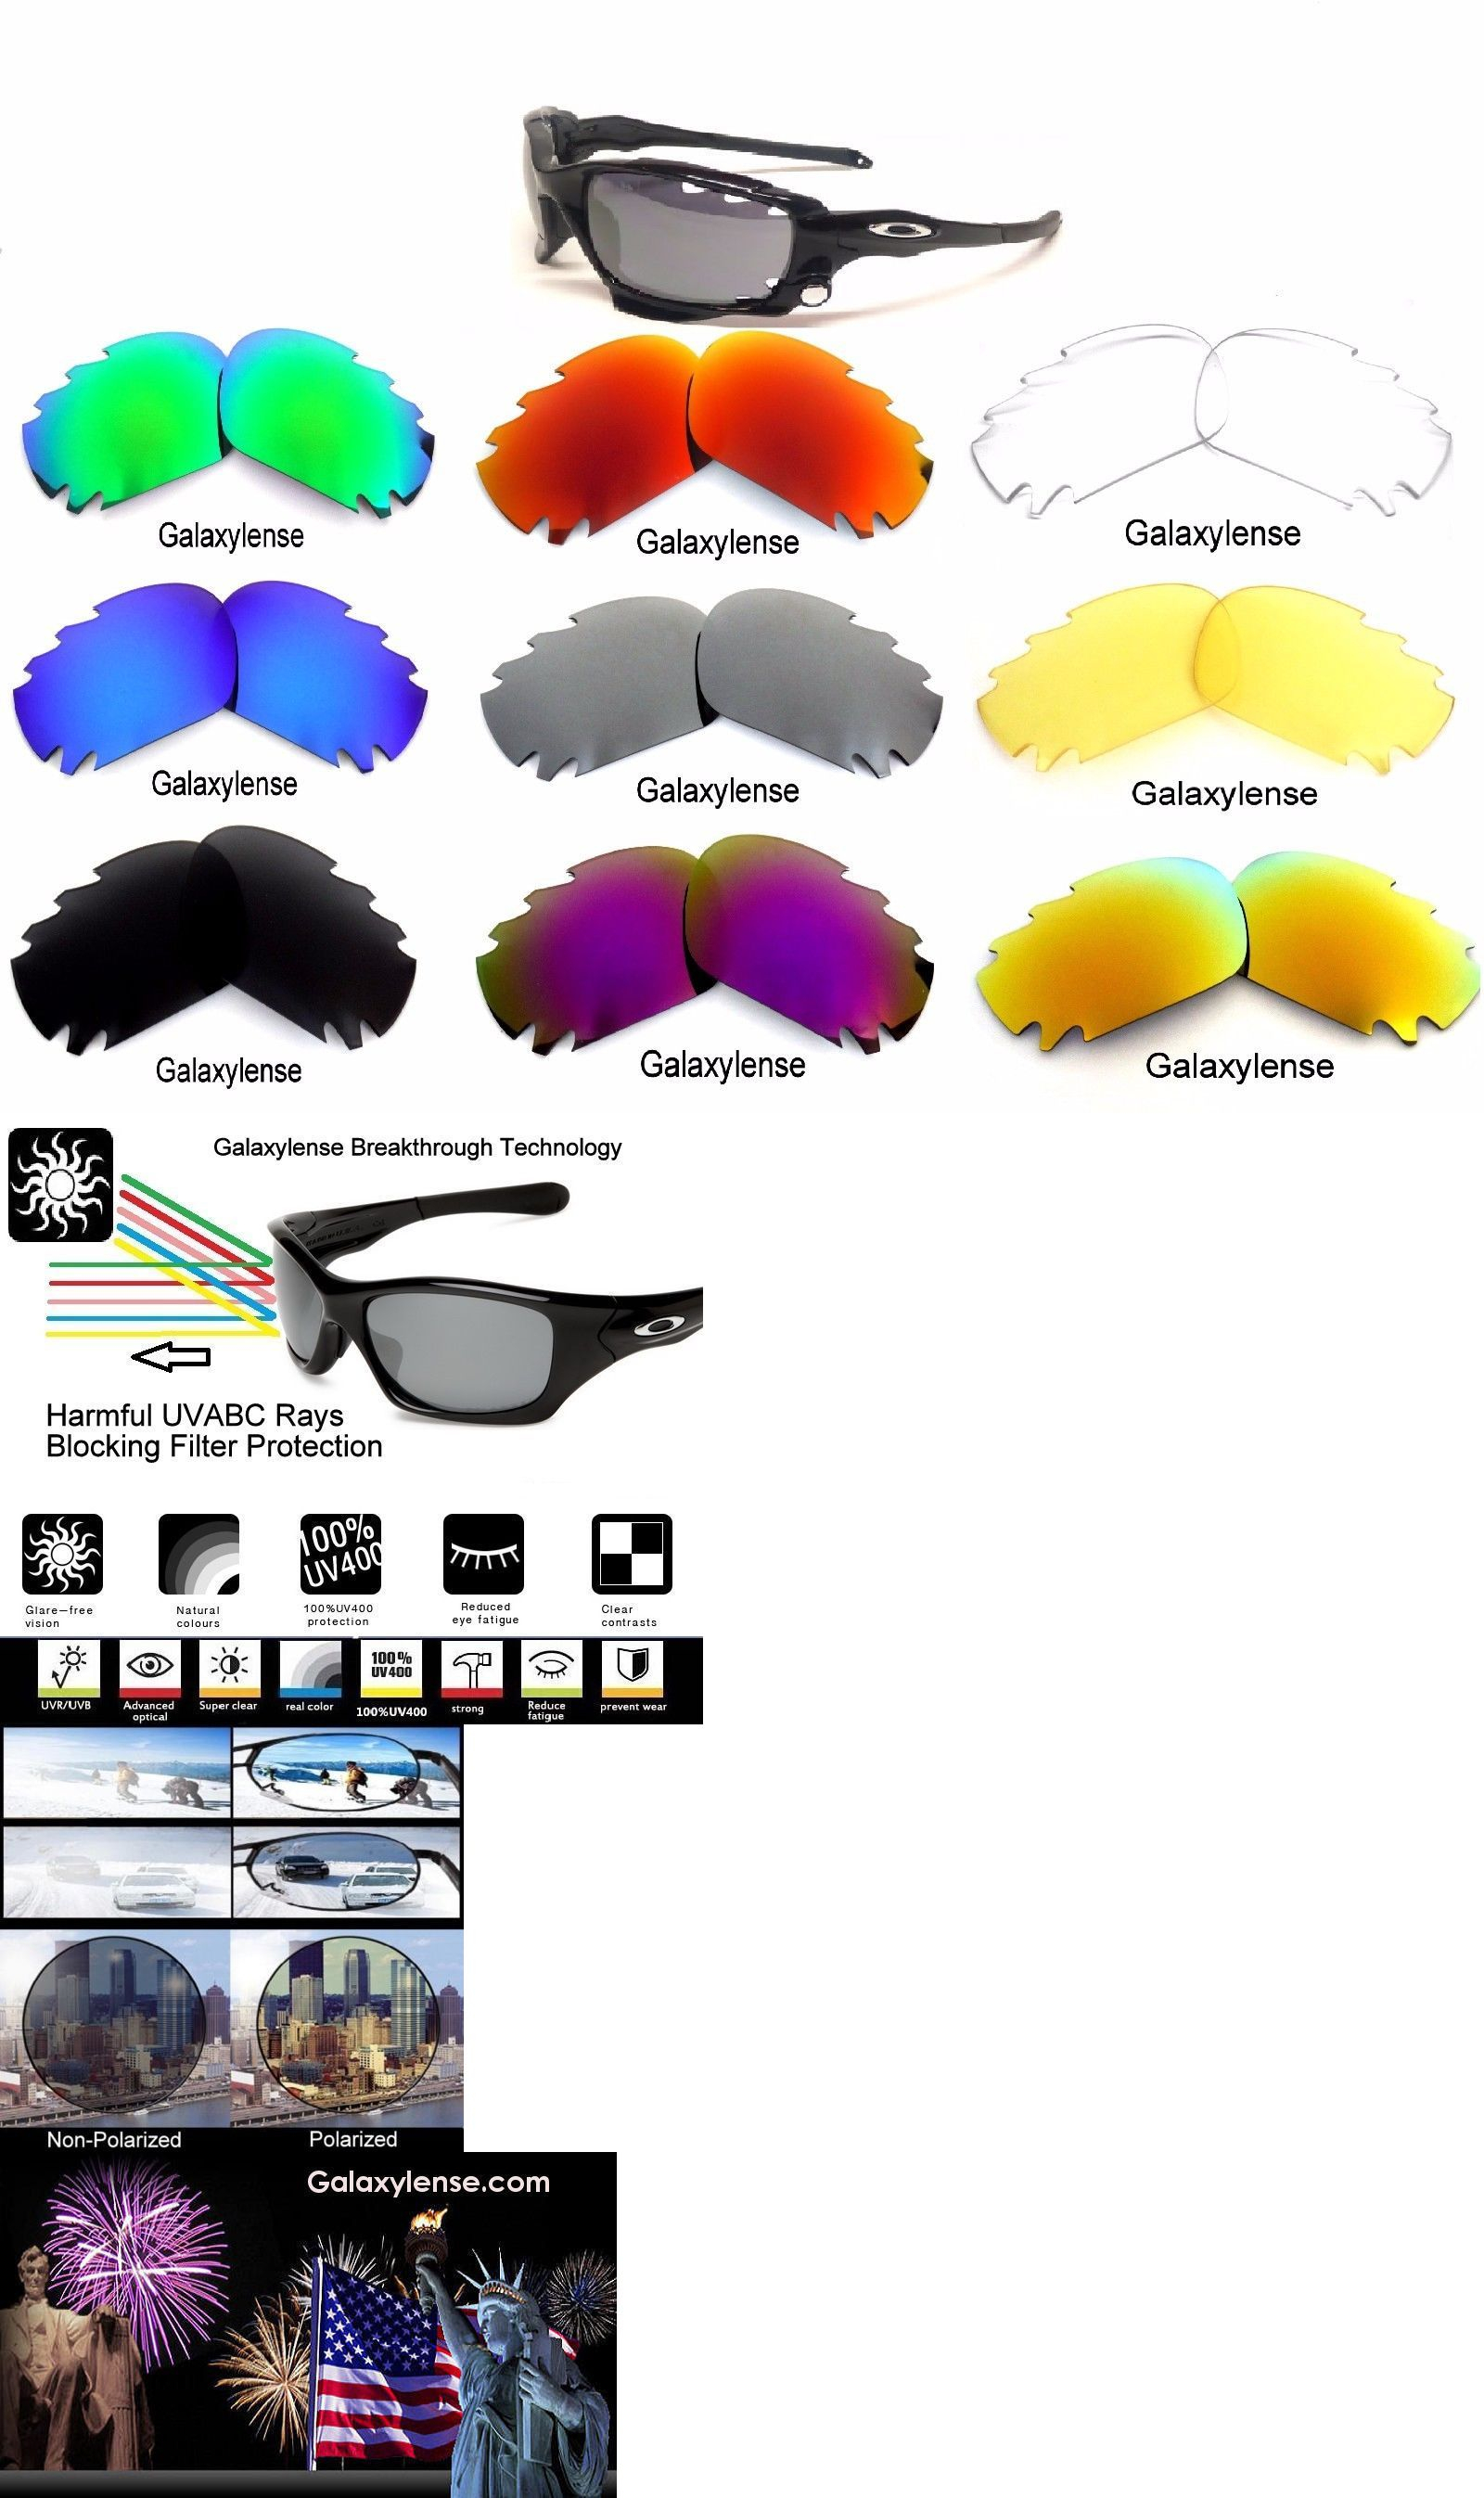 9f6a47185f3 Replacement Lenses and Parts 179195  Galaxy Replacement Lenses For Oakley  Jawbone Racing Jacket Multi-Color Polarized -  BUY IT NOW ONLY   18.92 on   eBay ...